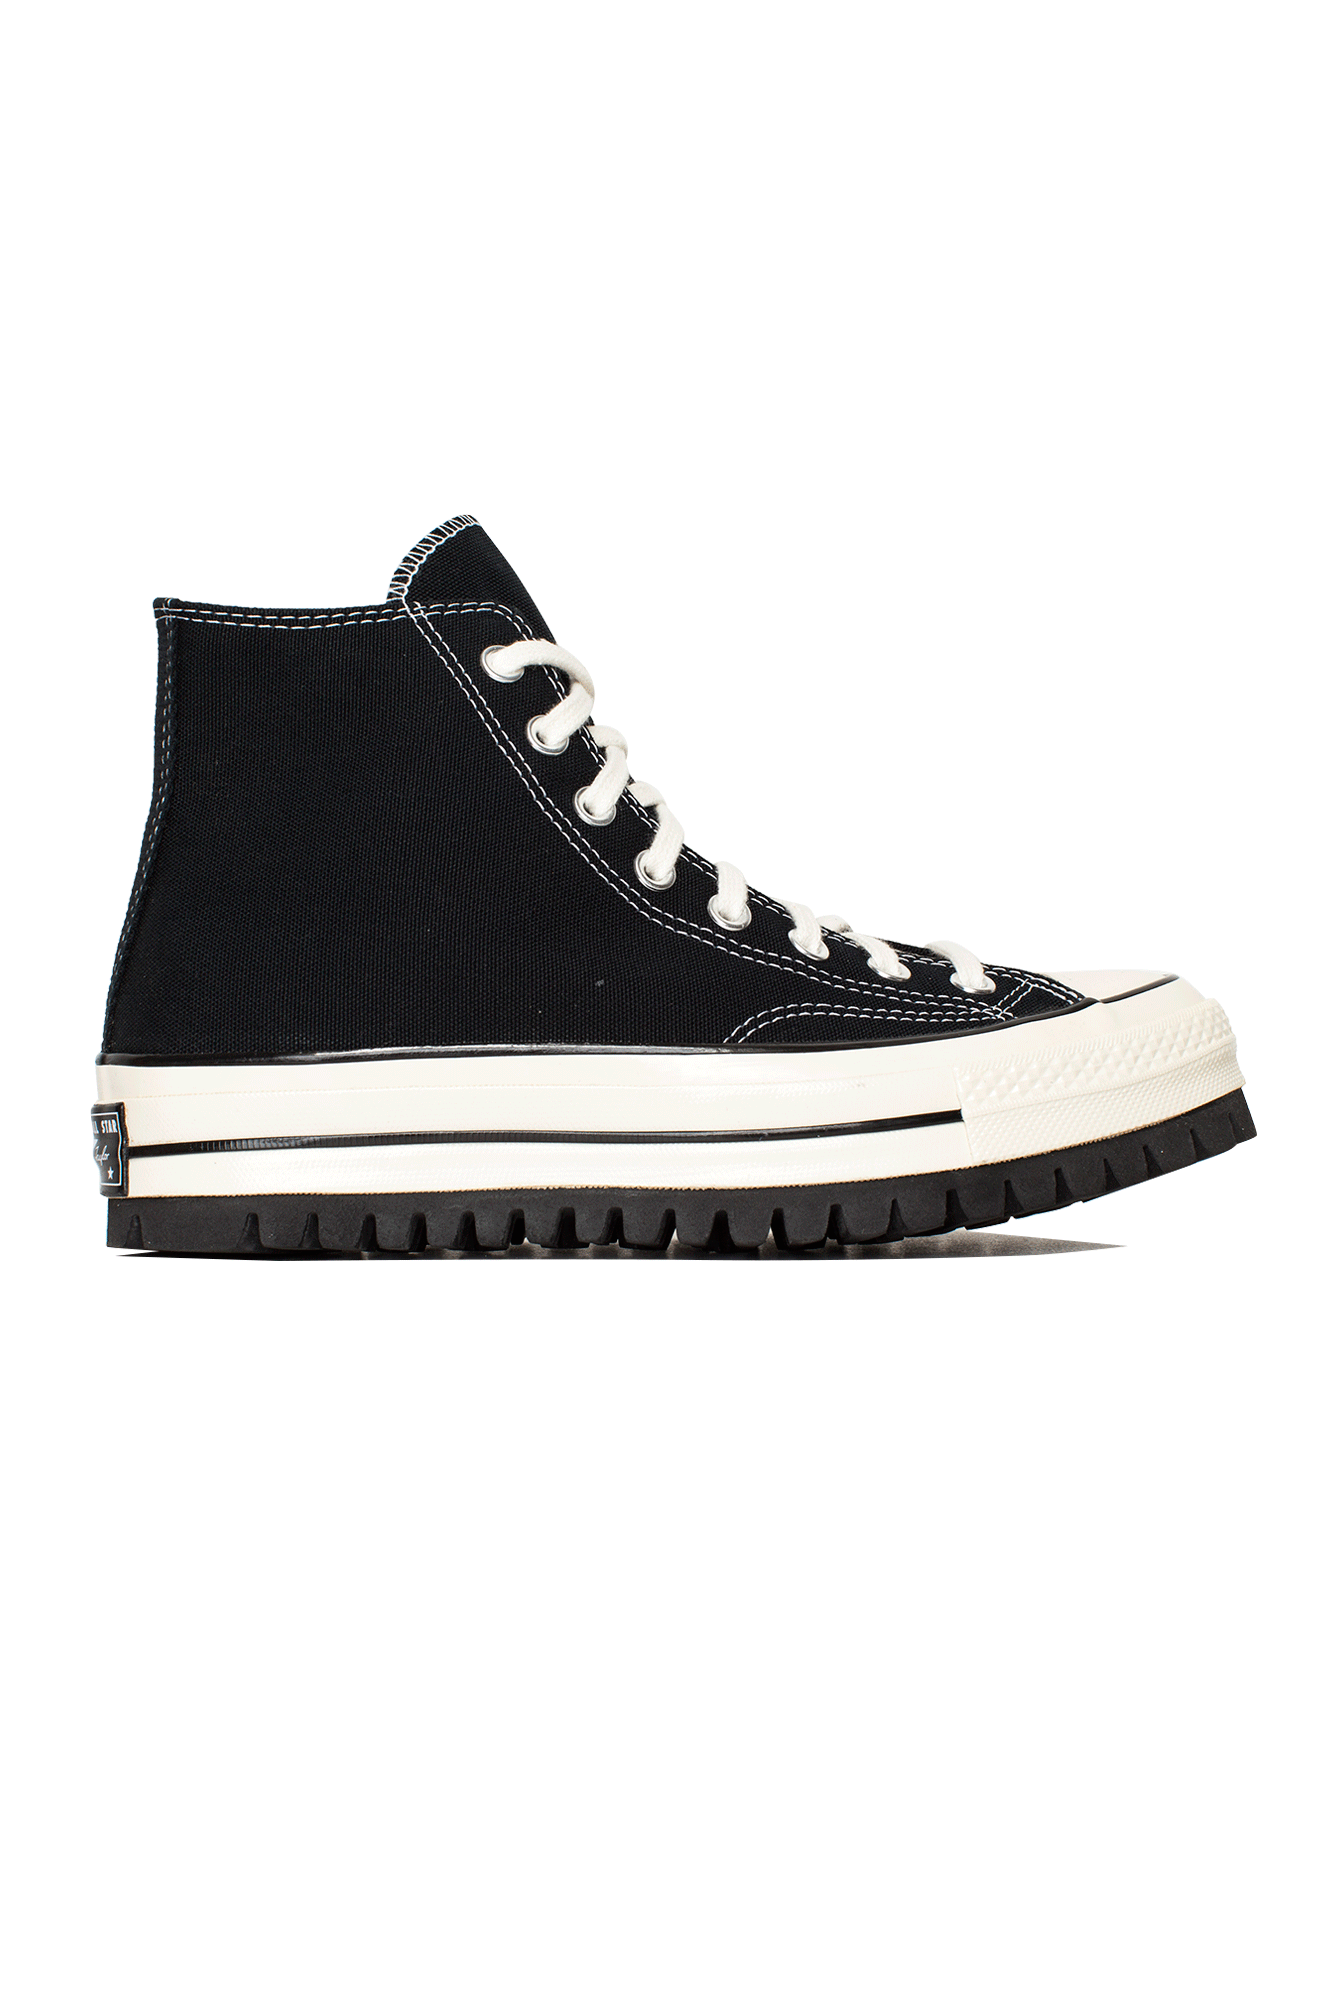 Chuck 70 Canvas LTD Black